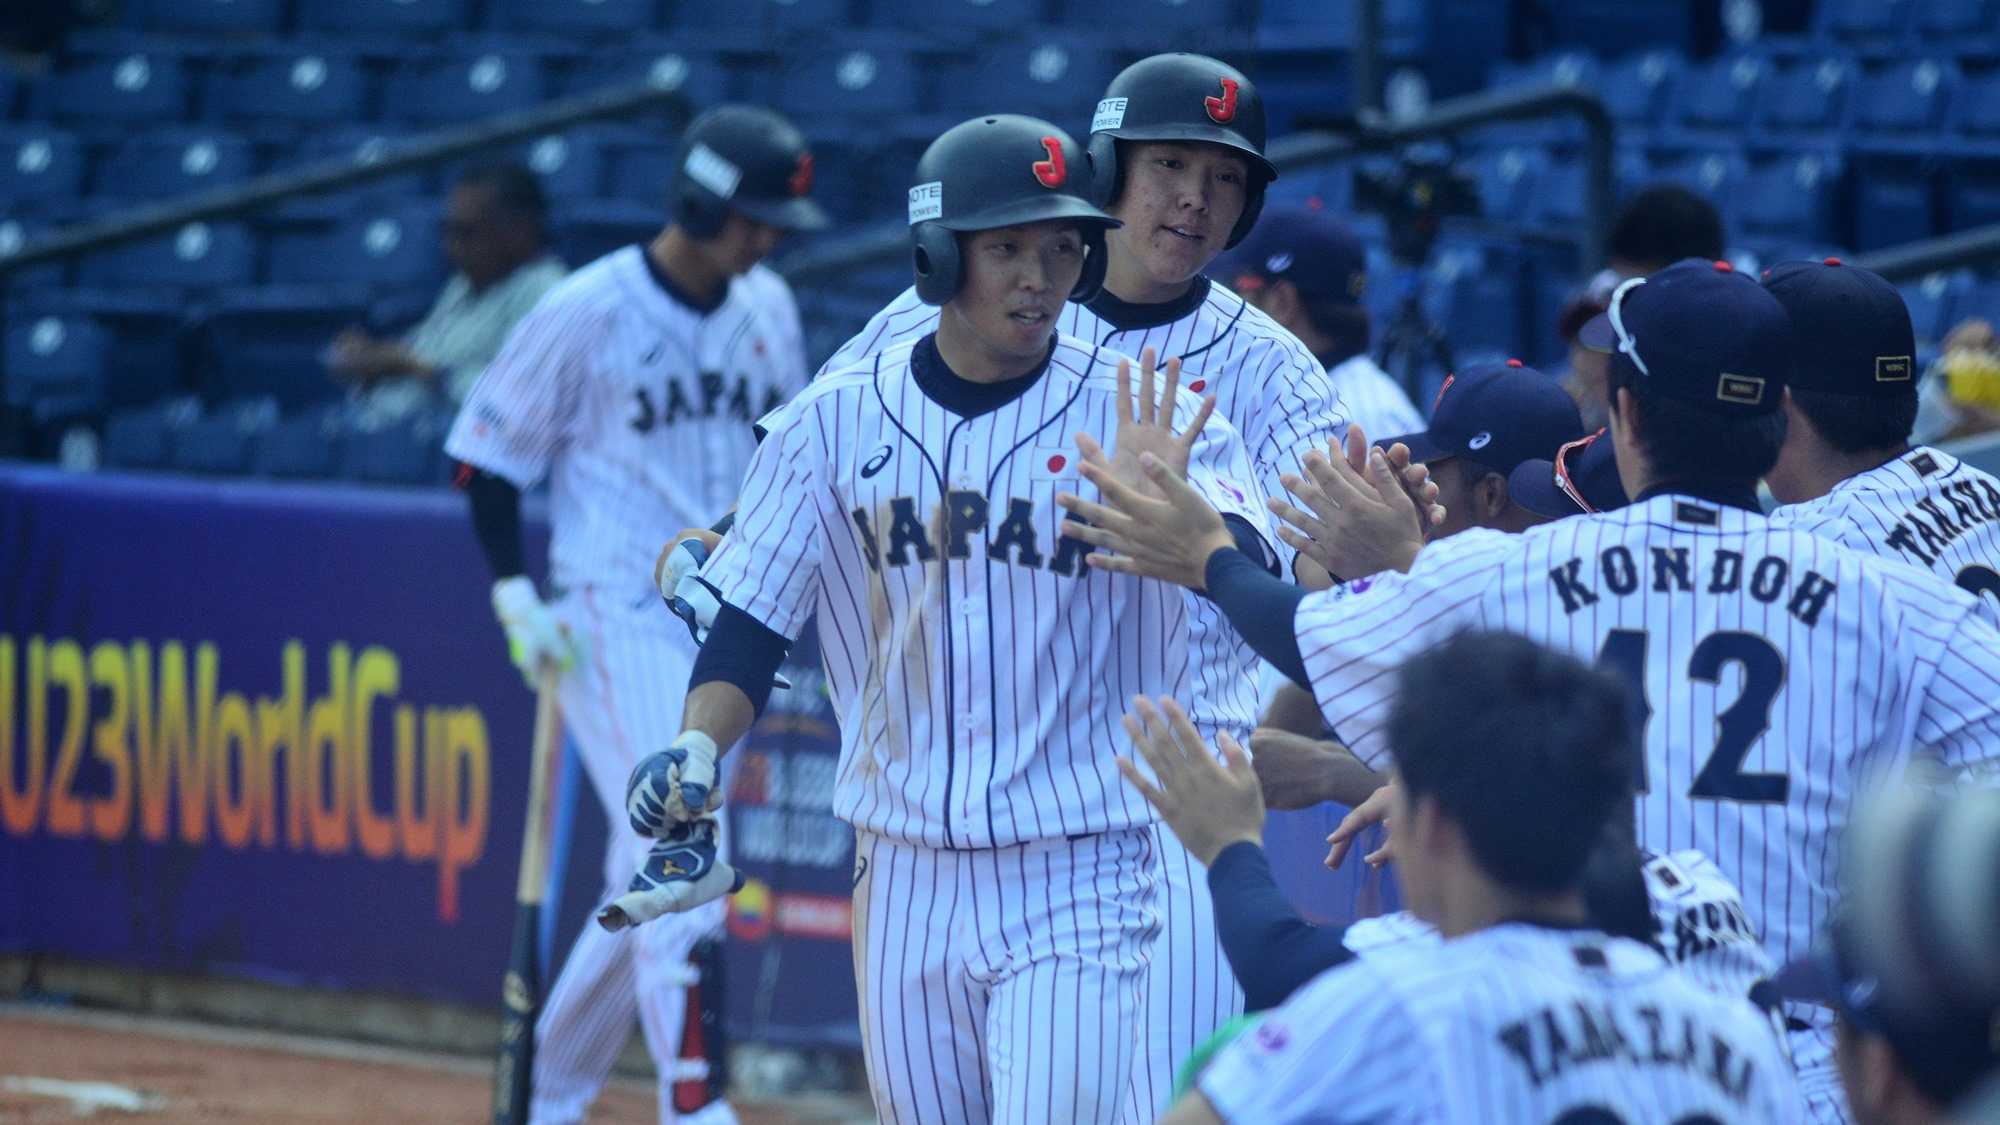 The defending U-23 World Champions Japan hit three home runs to record the first win